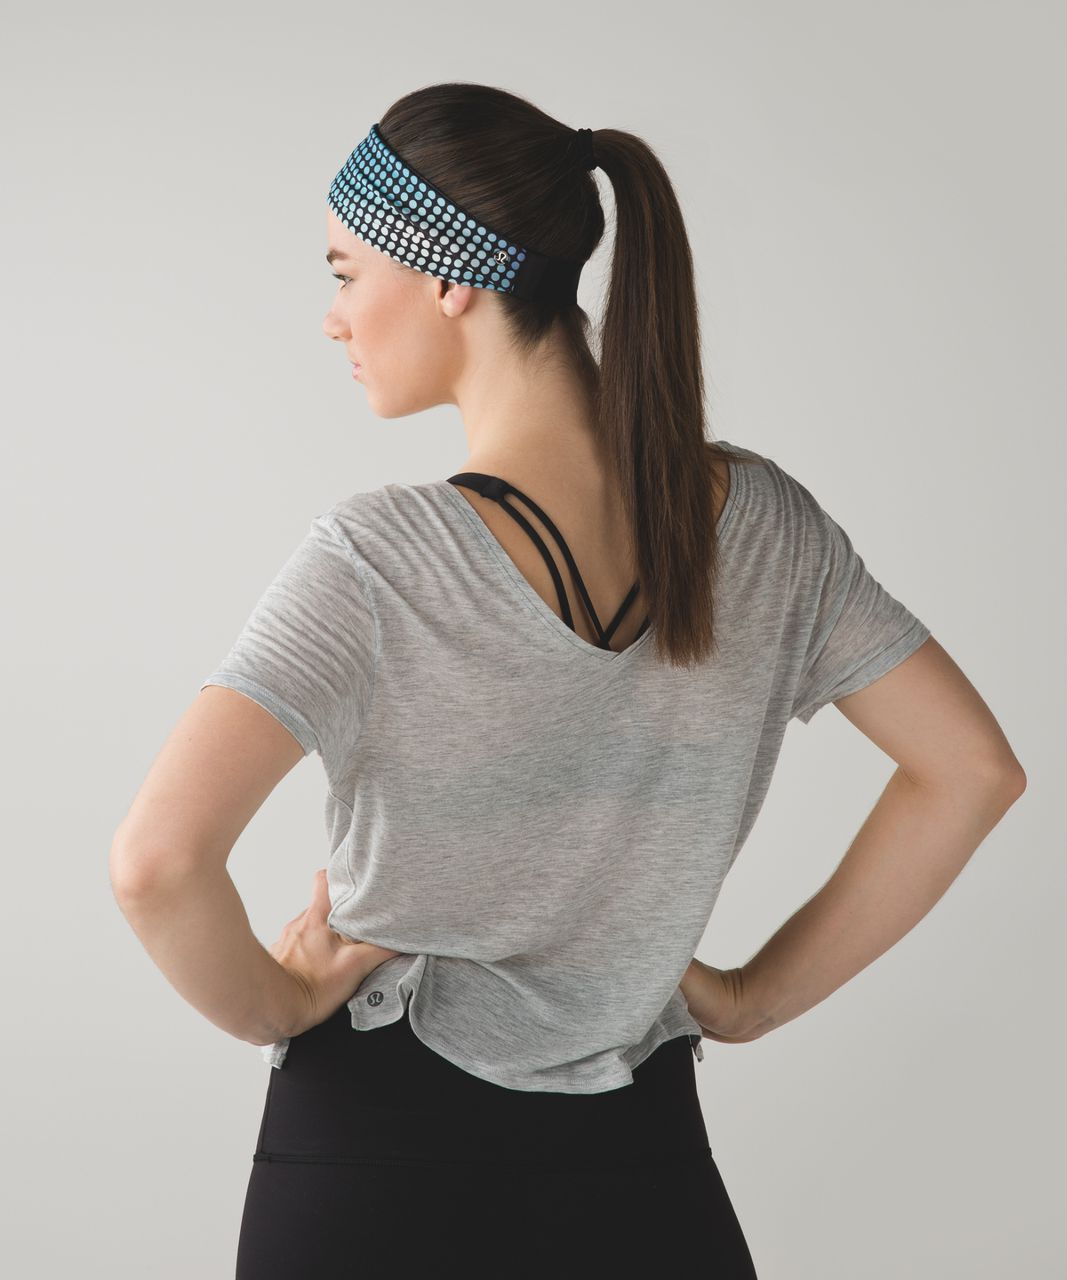 Lululemon Fringe Fighter Headband - Cosmic Dot White Multi / Tiger Space Dye Dark Slate Black